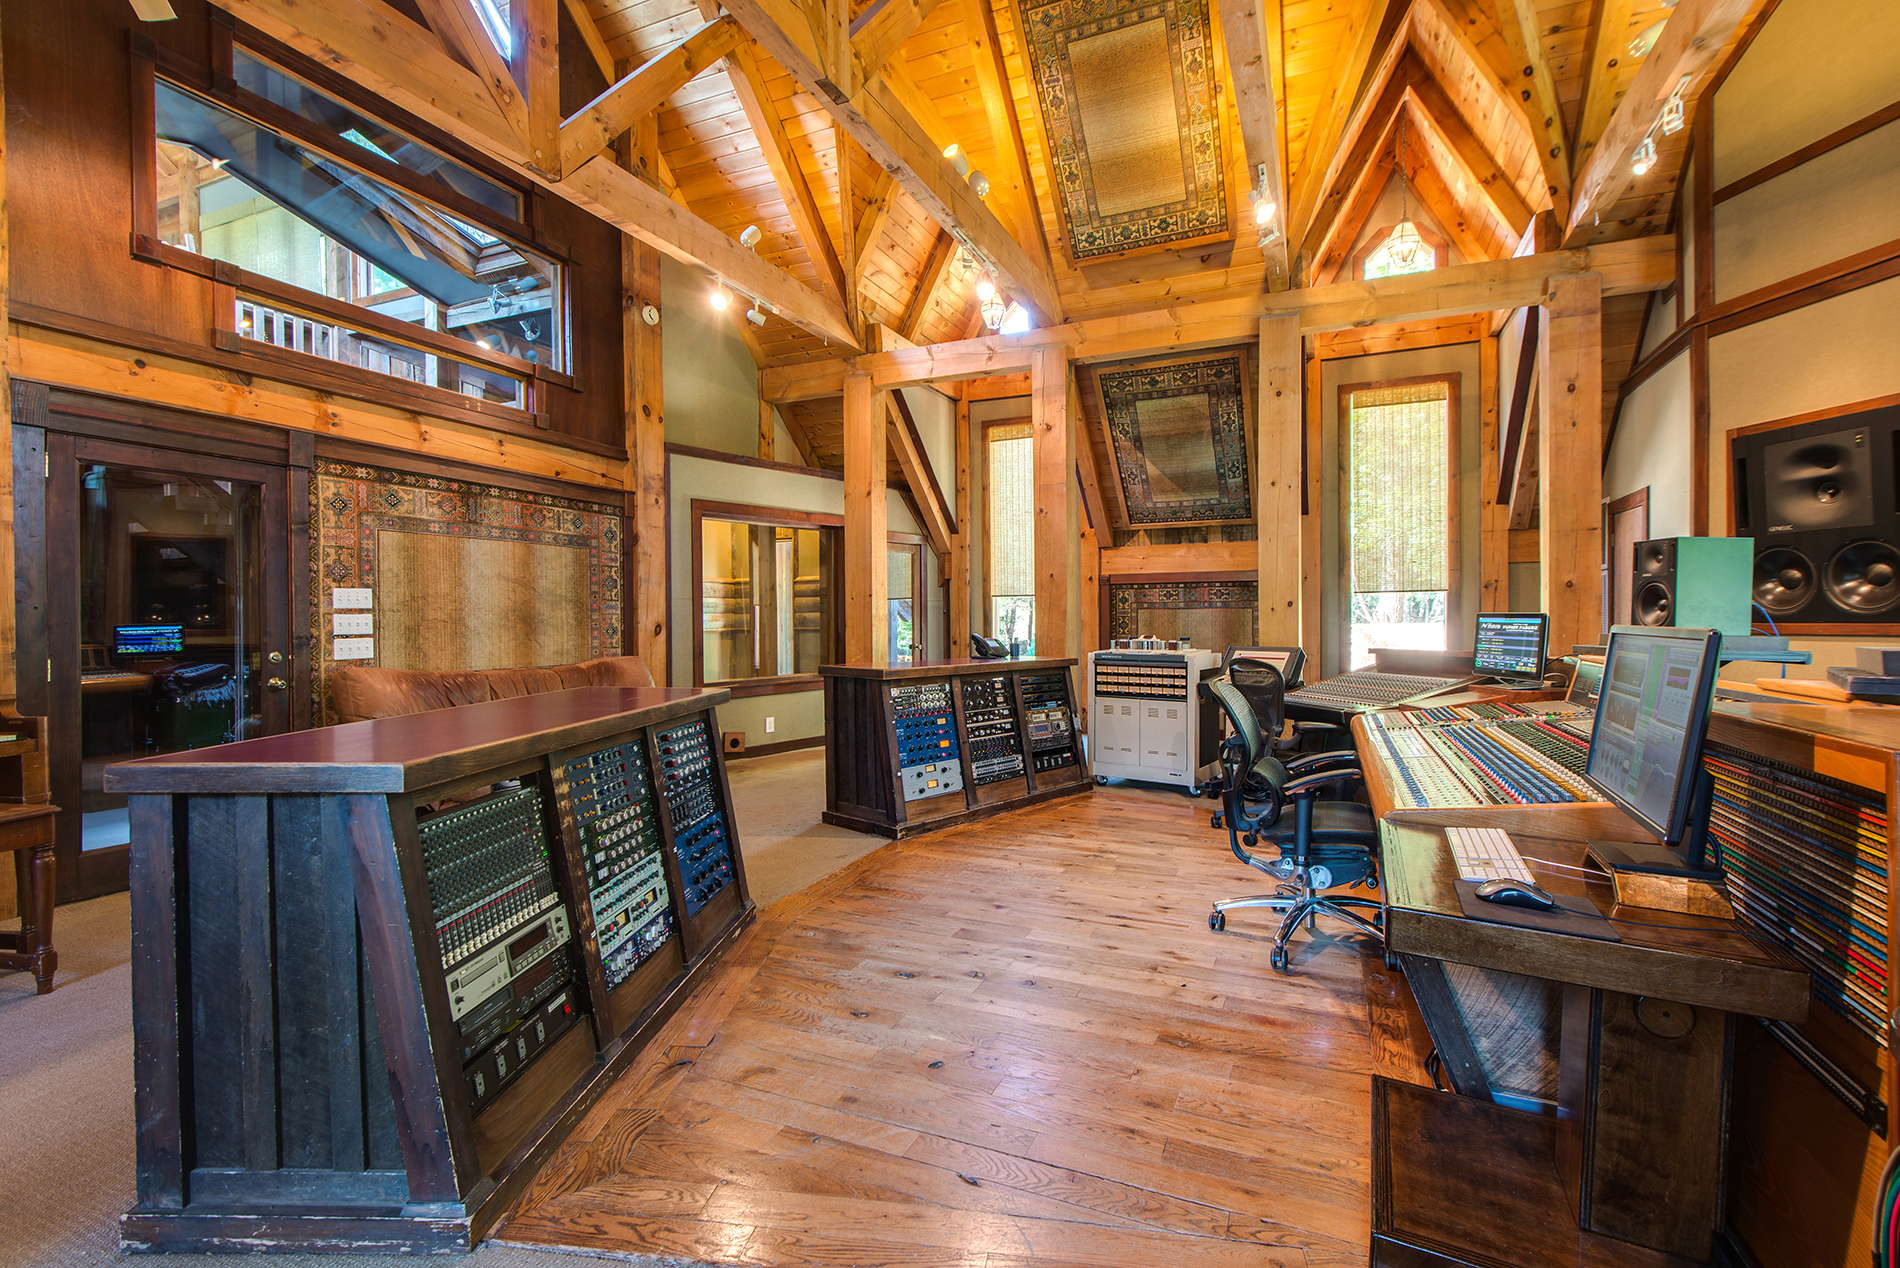 The Lodge Control Room